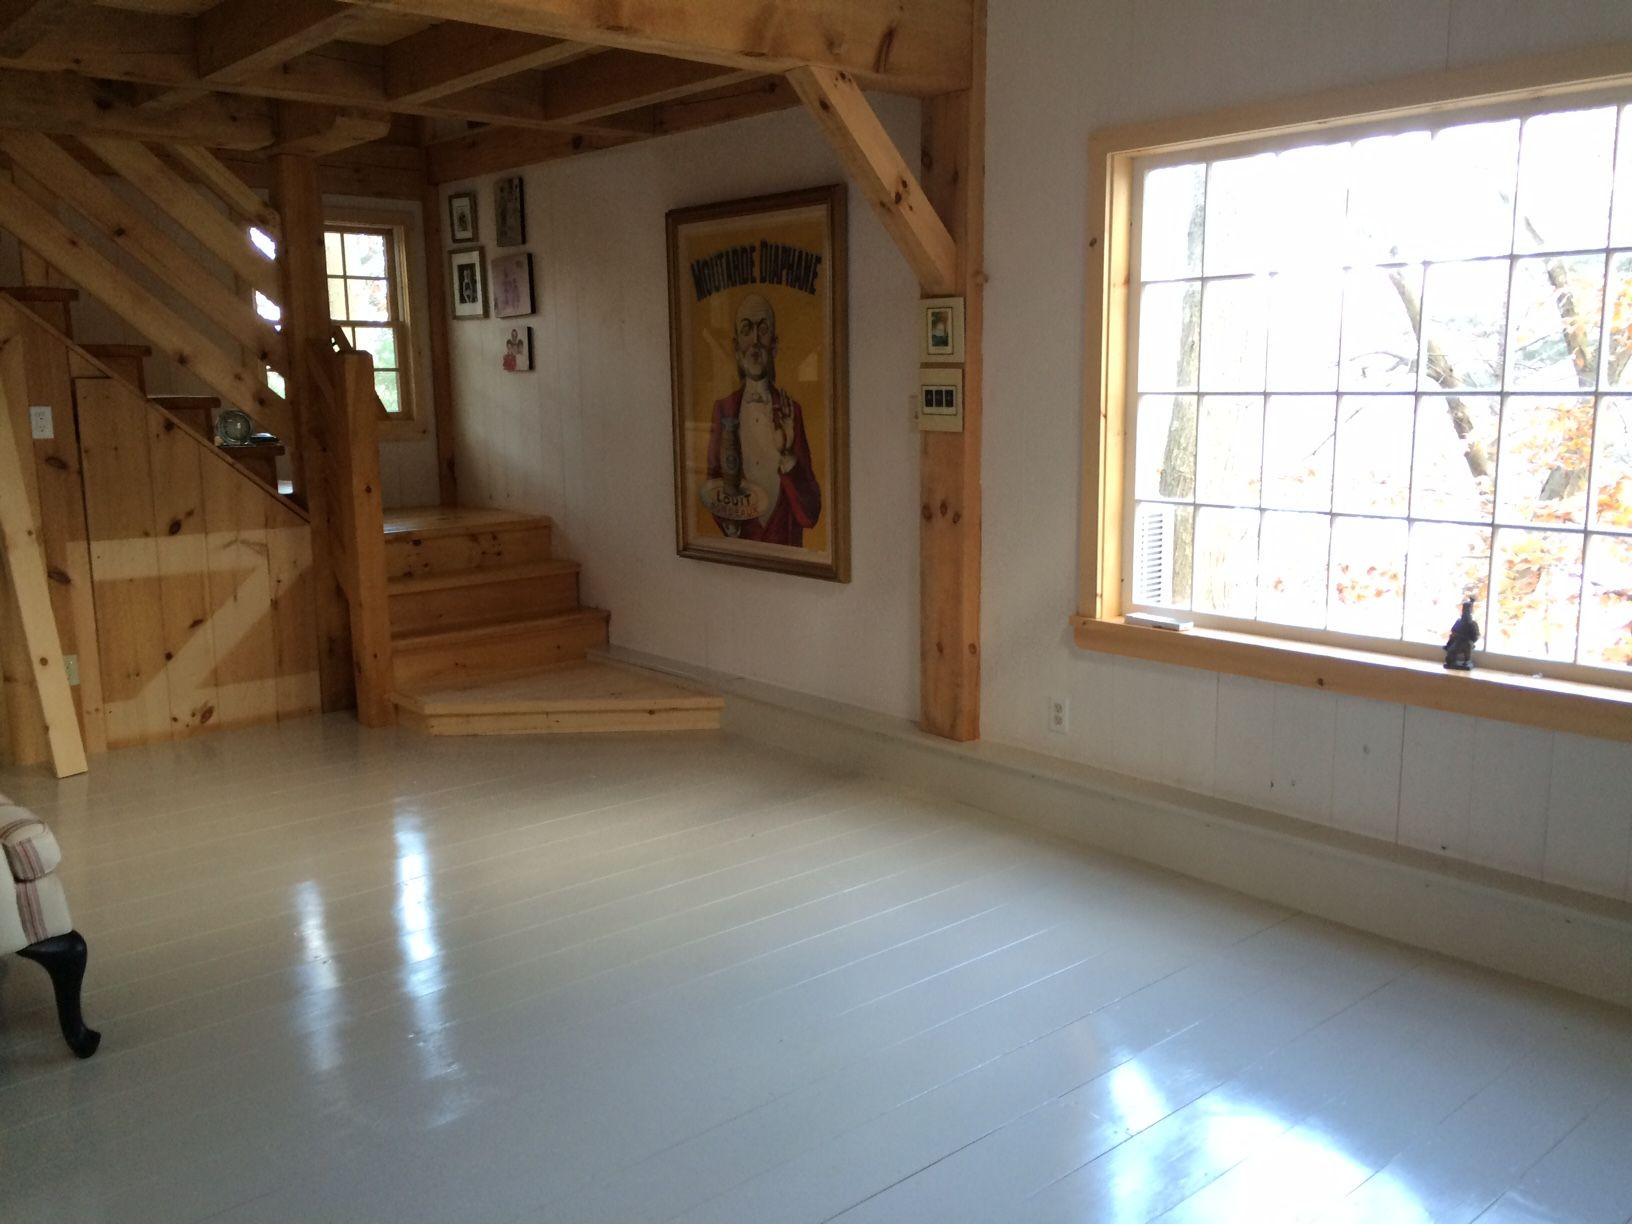 installing hardwood floors on concrete subfloor of in this picture we installed an insulated wood floor over a concrete with in this picture we installed an insulated wood floor over a concrete slab with frost wall